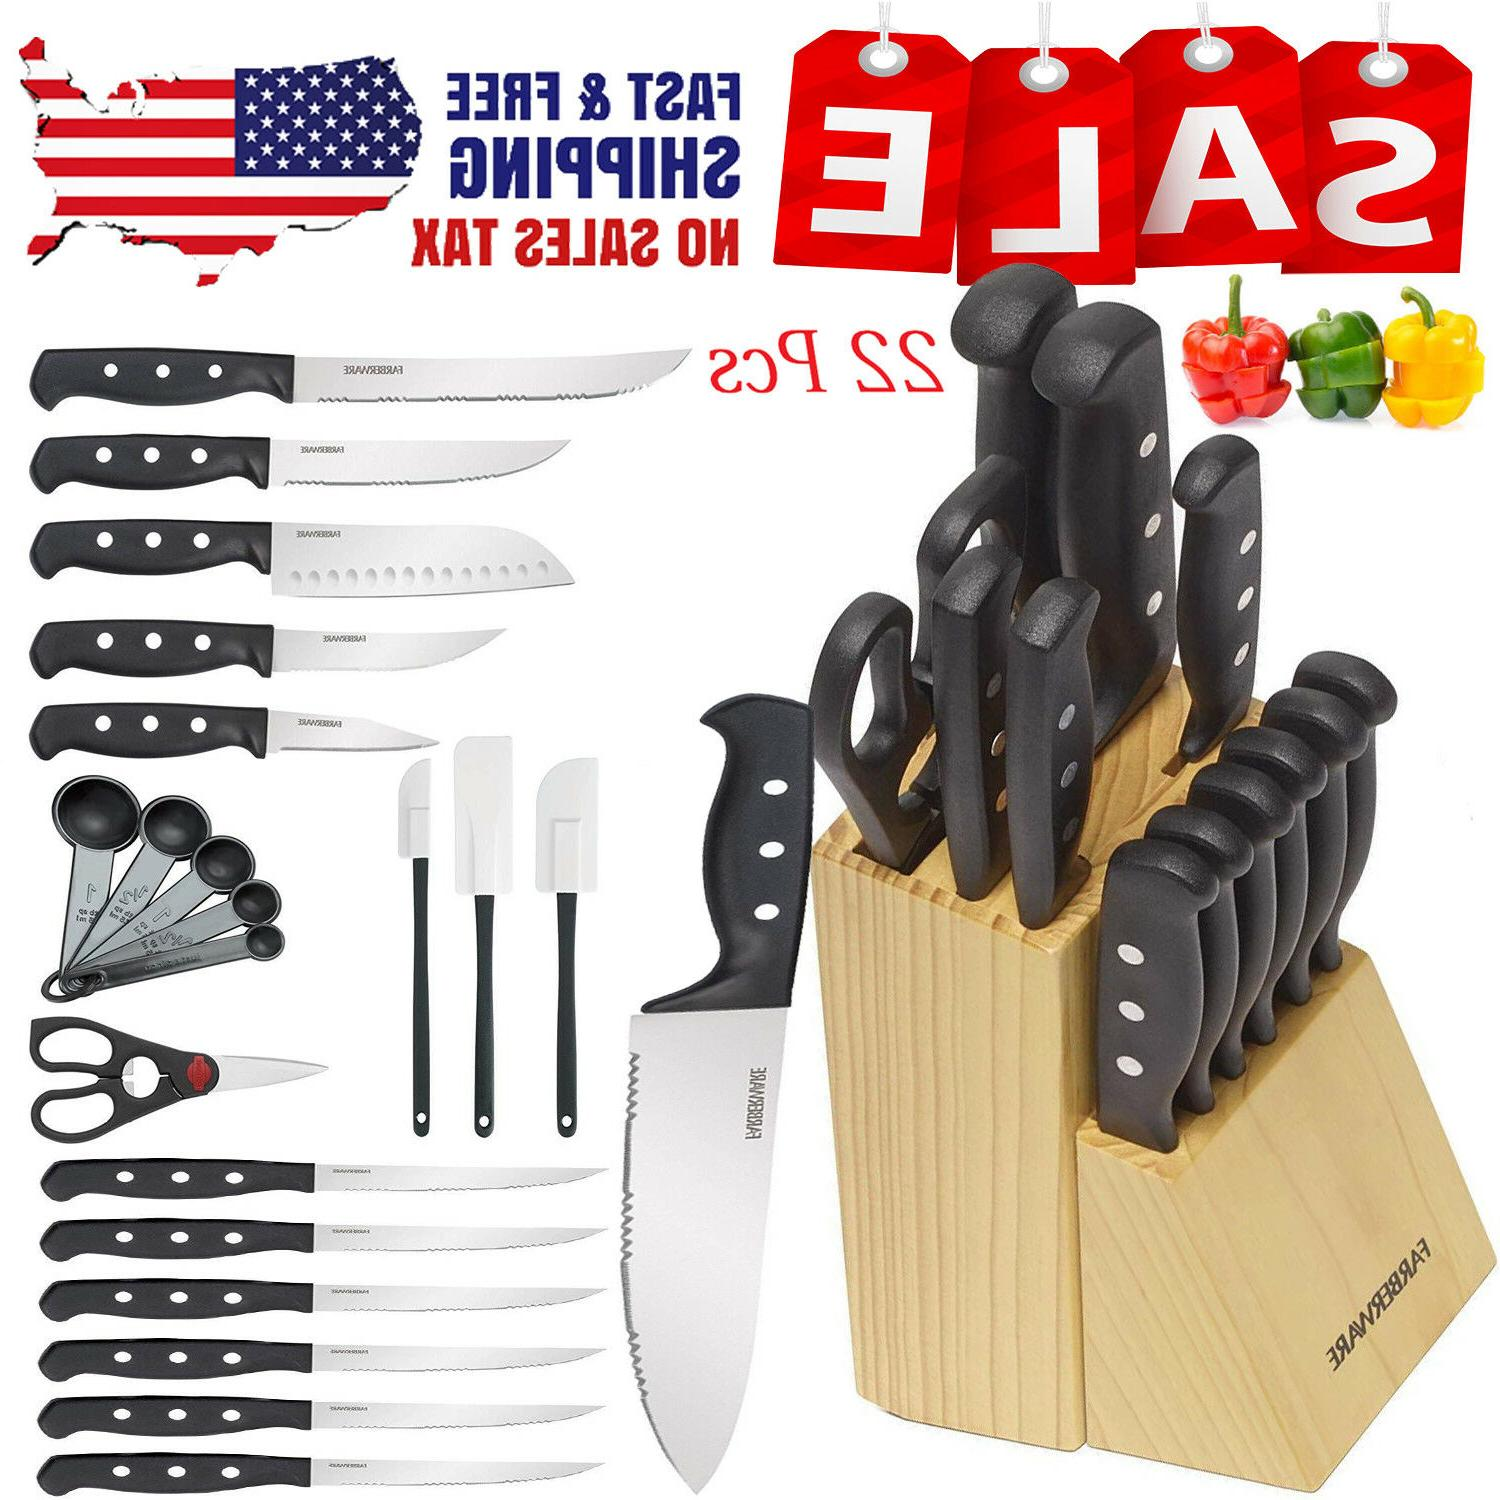 knife farberware set kitchen sharpening stainless steel